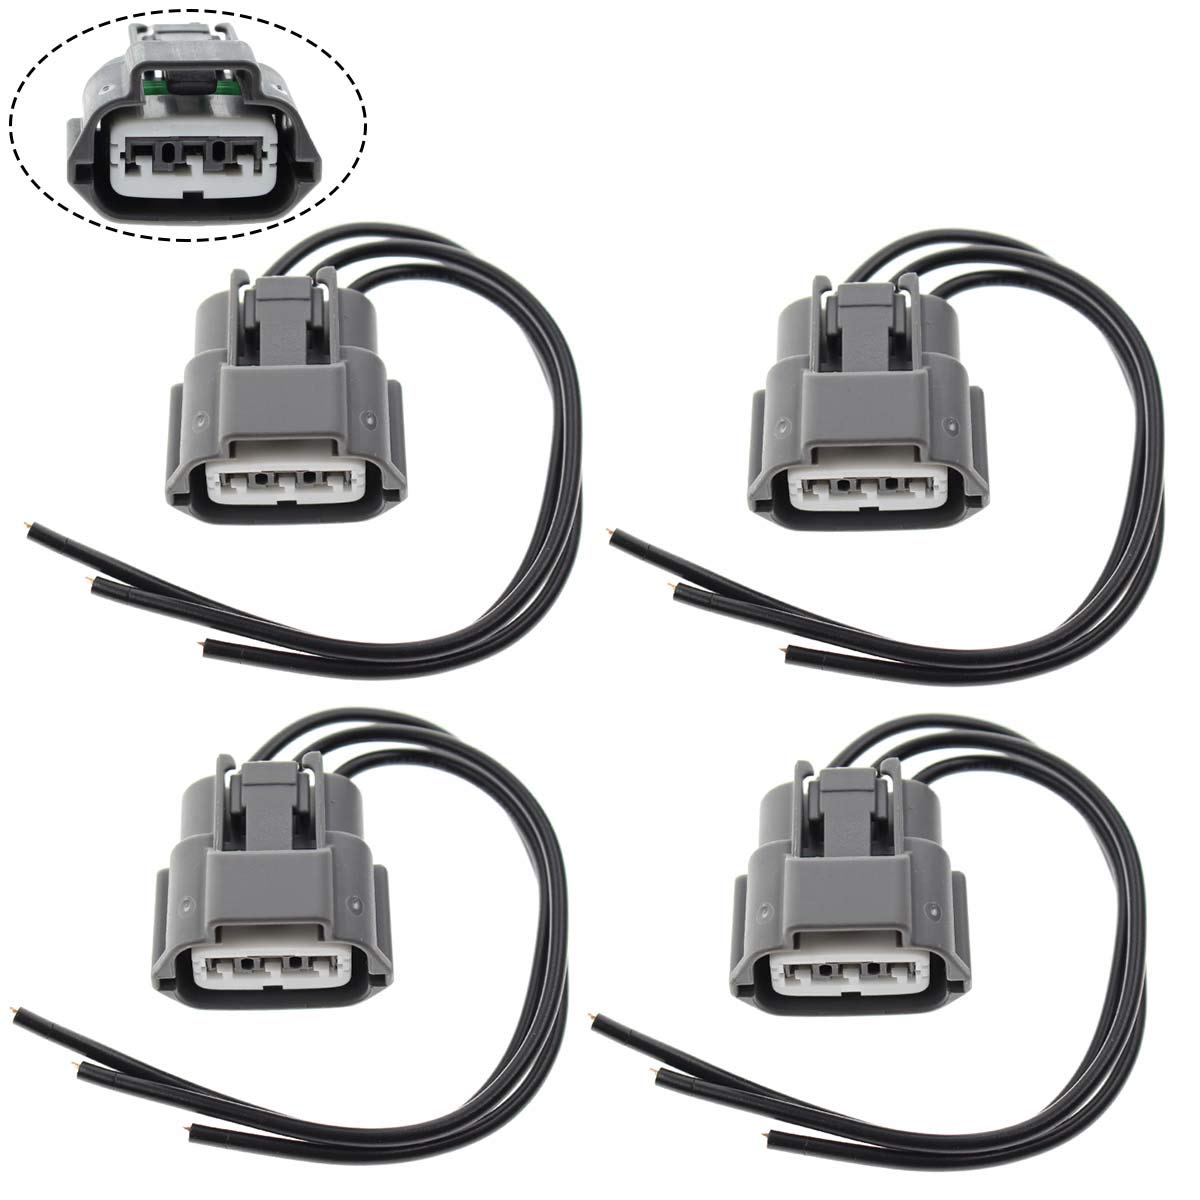 MOTOALL Ignition Coil Connector Plug Wire Harness Pigtail Wiring Loom 3-wire  Female for Nissan Infiniti ...